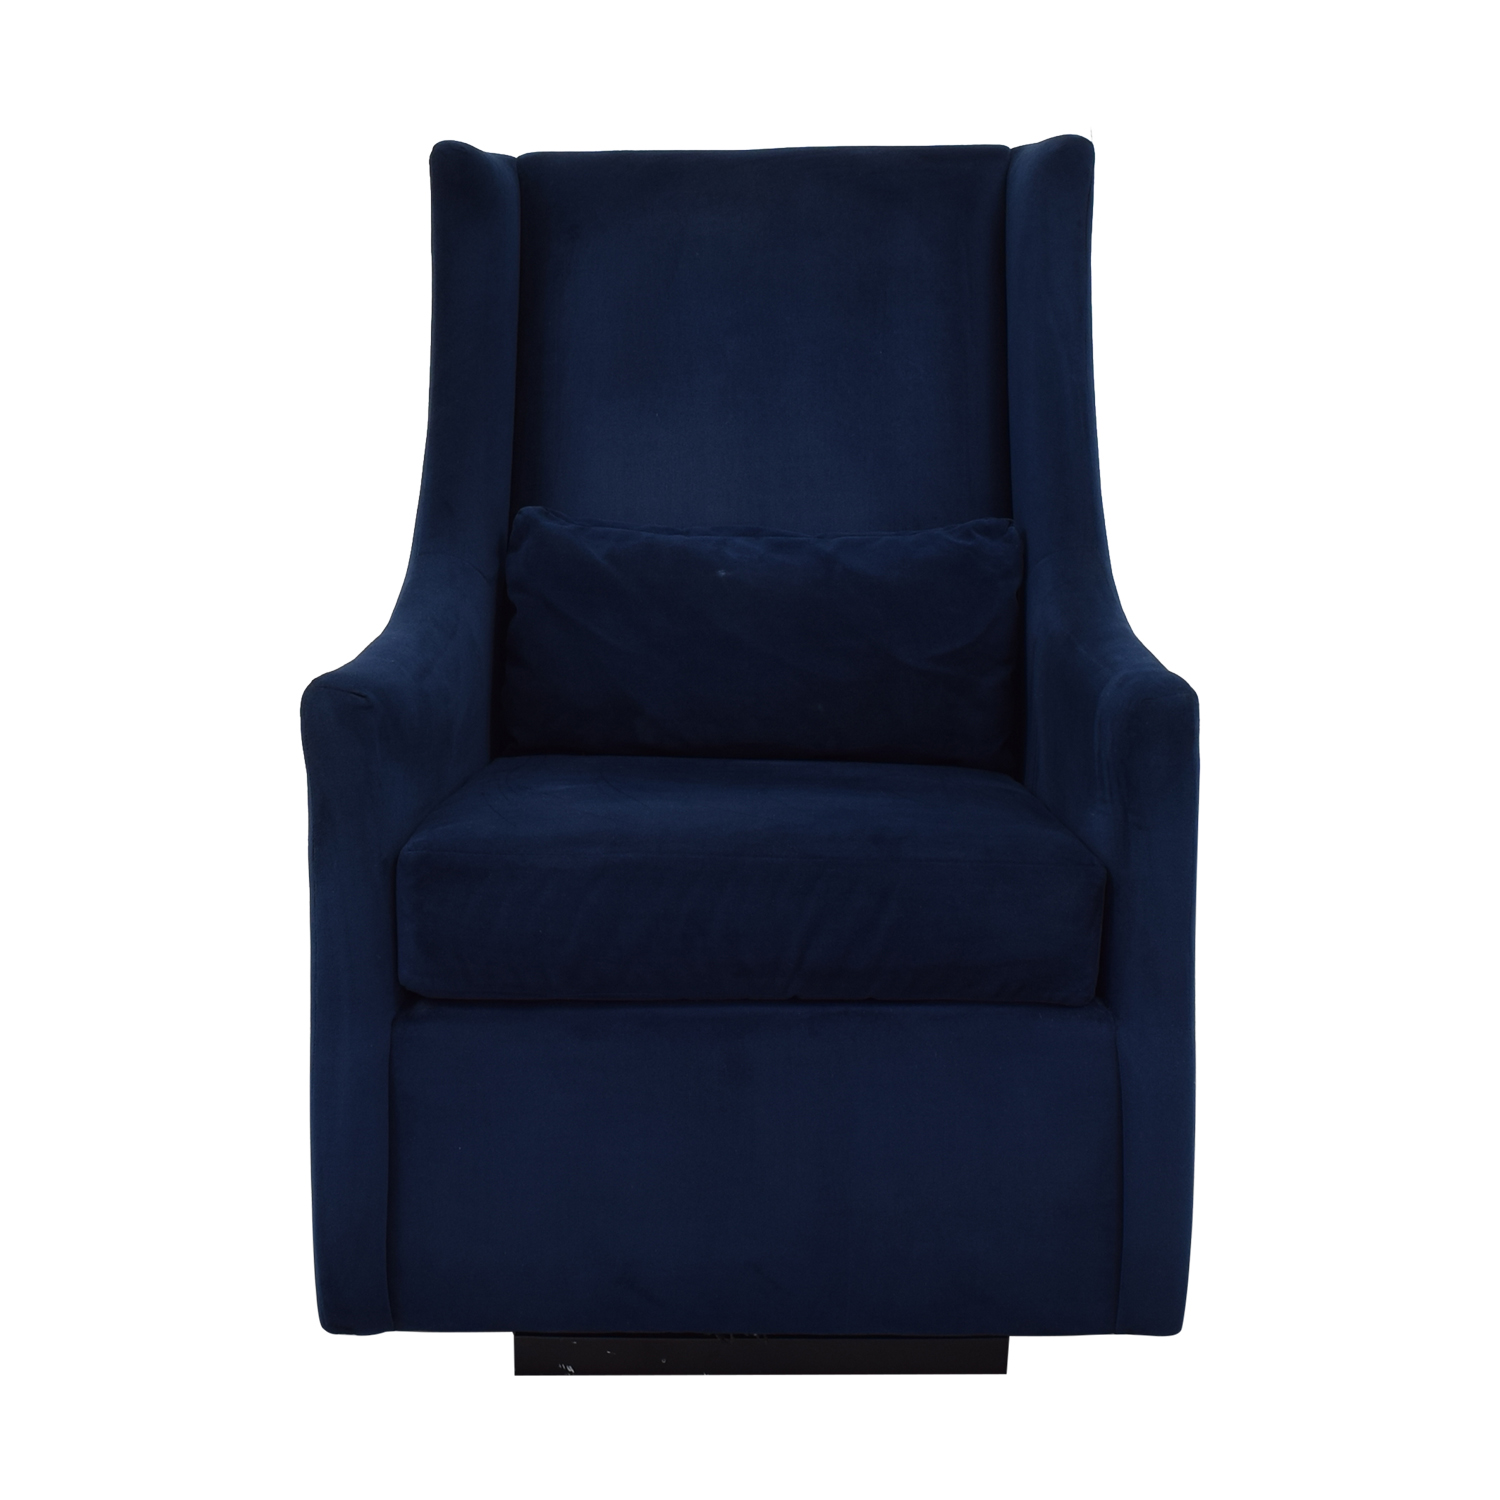 West Elm Graham Glider / Accent Chairs